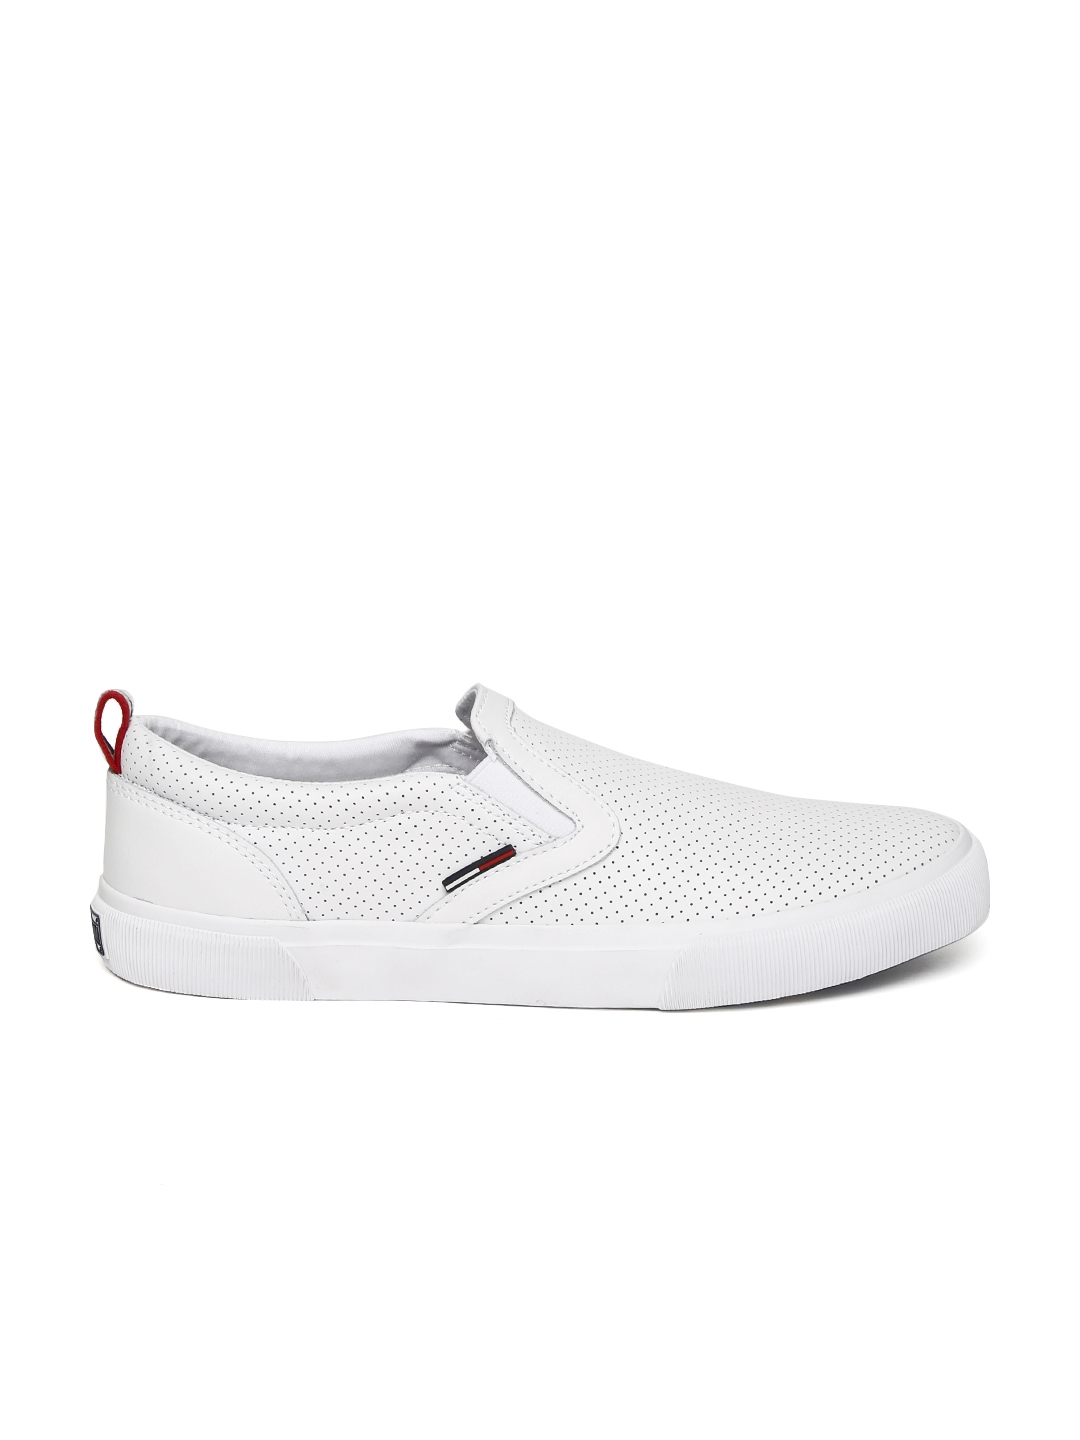 0298e87dd Buy Tommy Hilfiger Men White Perforated Leather Slip On Sneakers ...